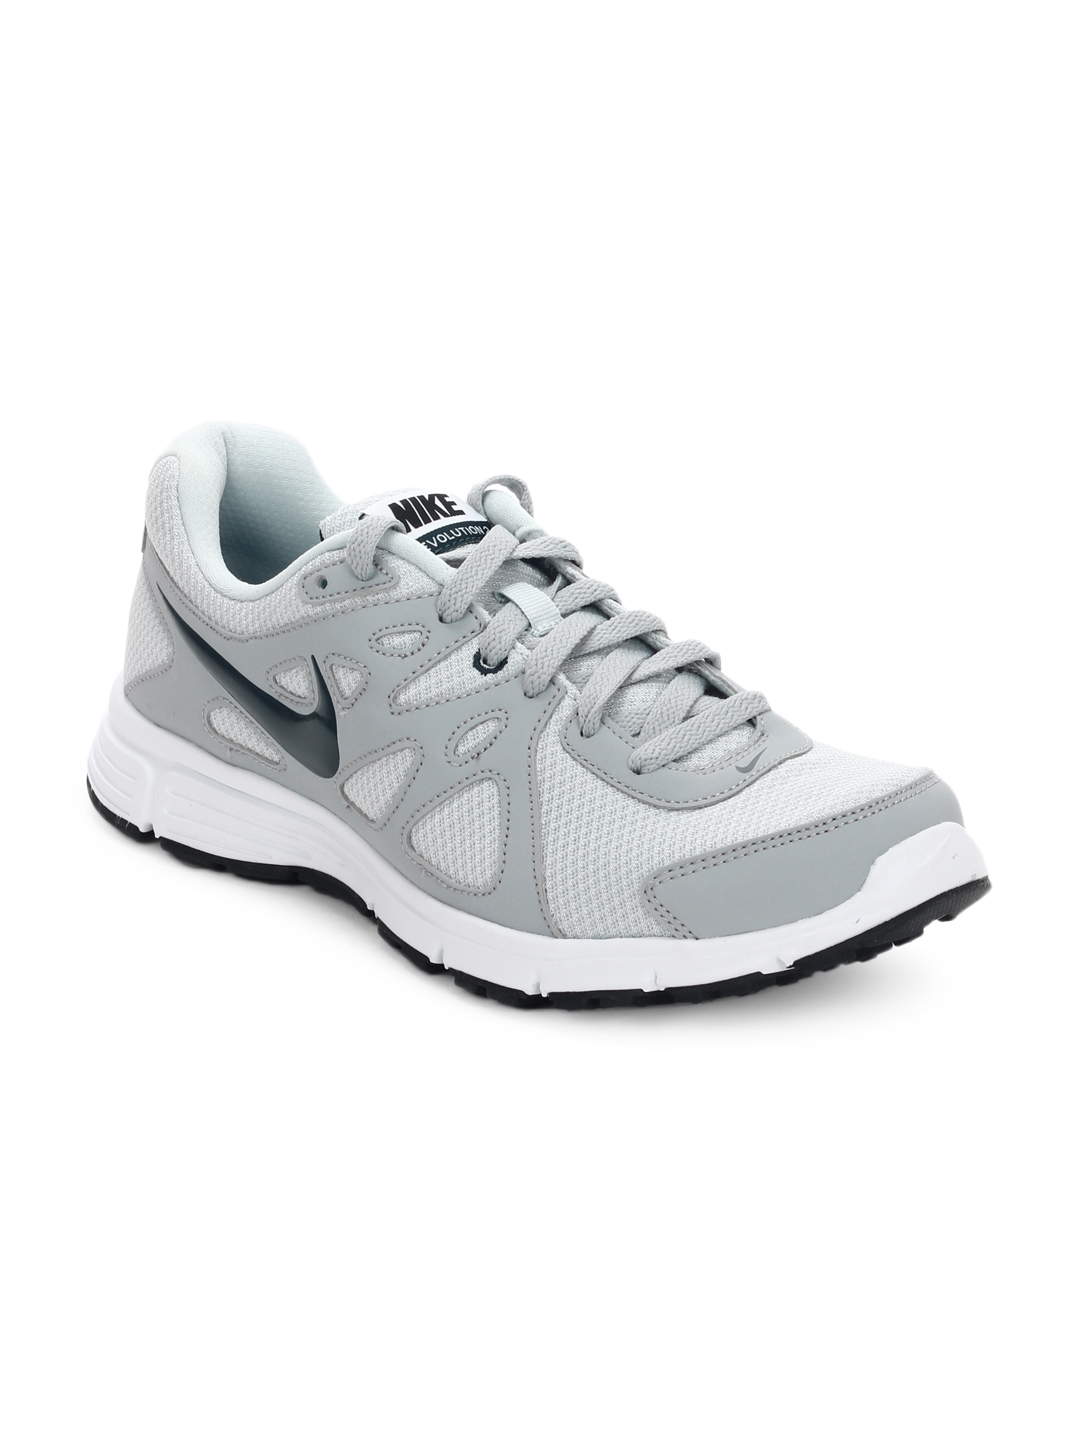 more sports shoes from nike all products from nike